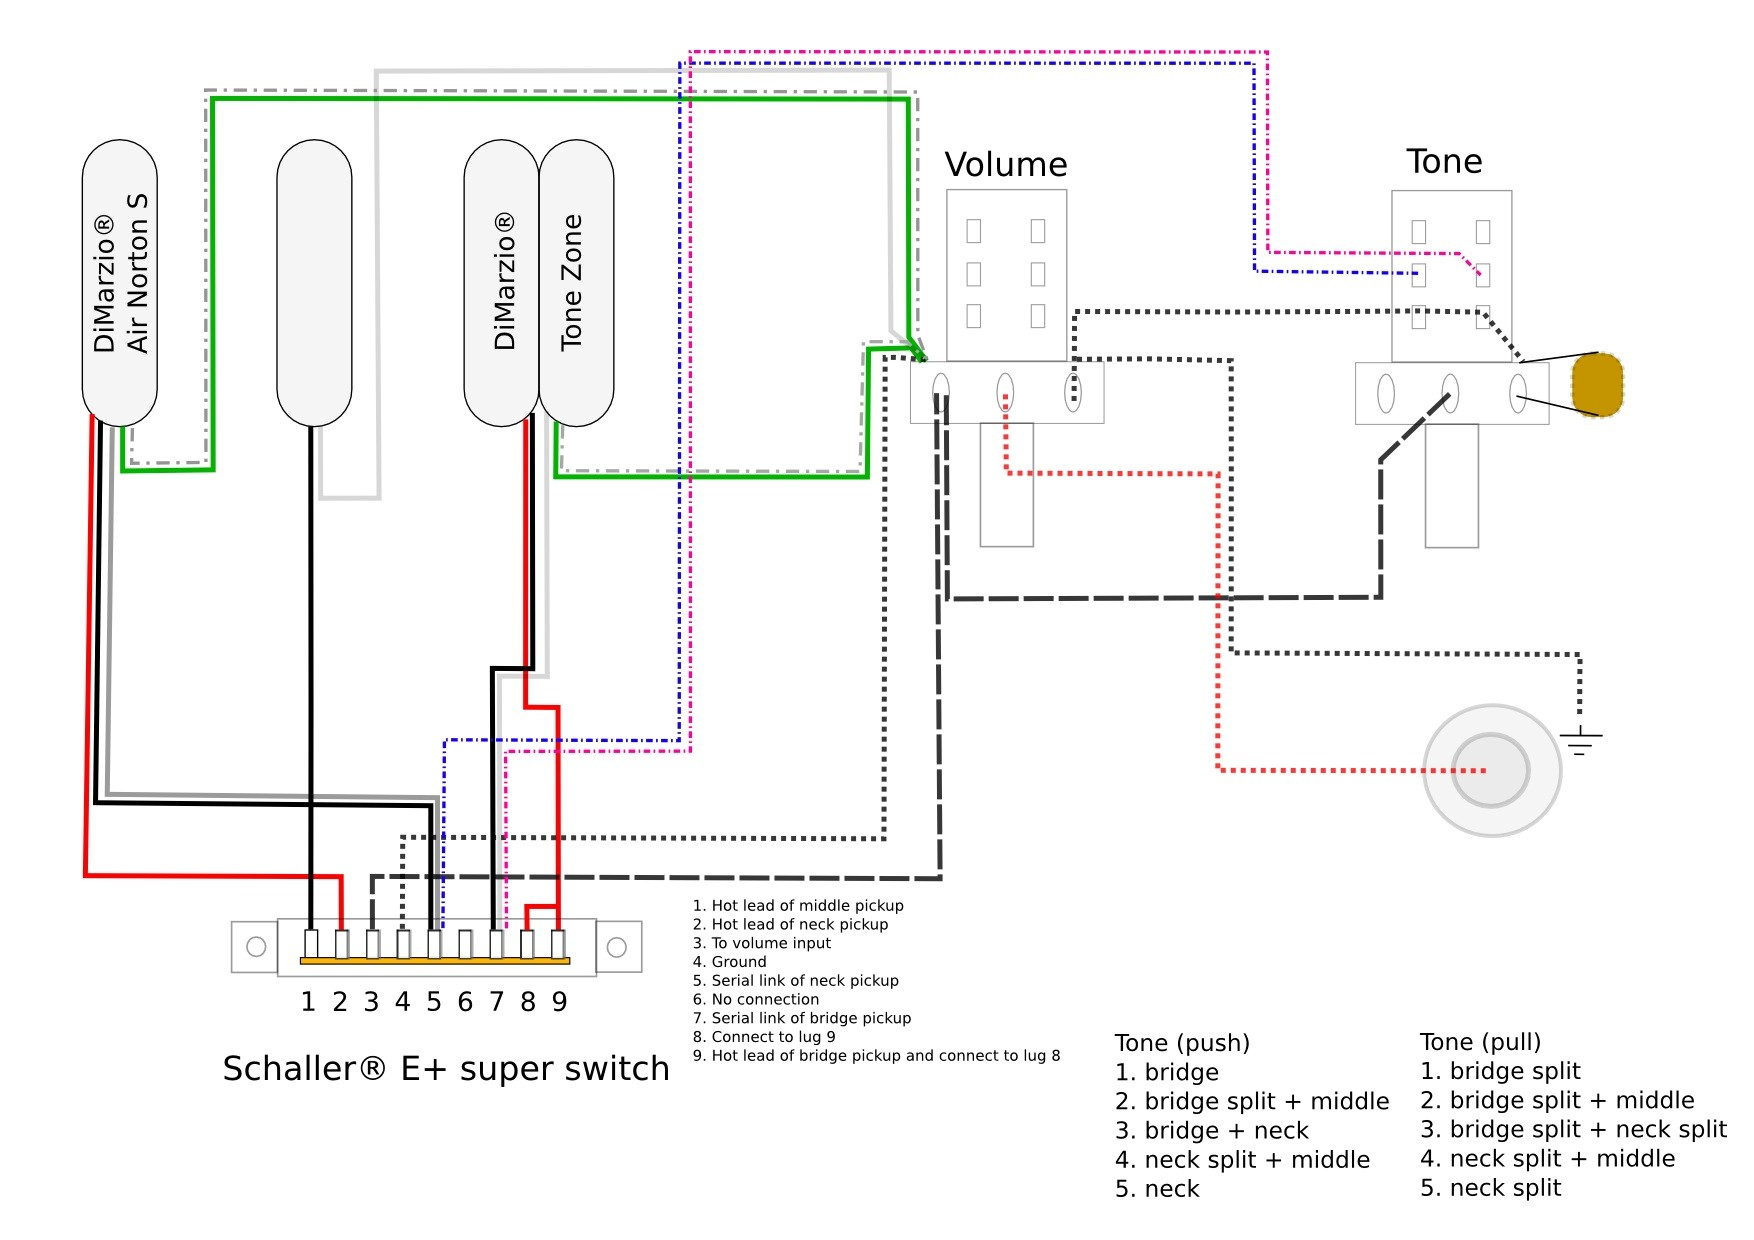 Hsh Pickup Wiring Diagram For Super Switch In Wilkinson Pickups